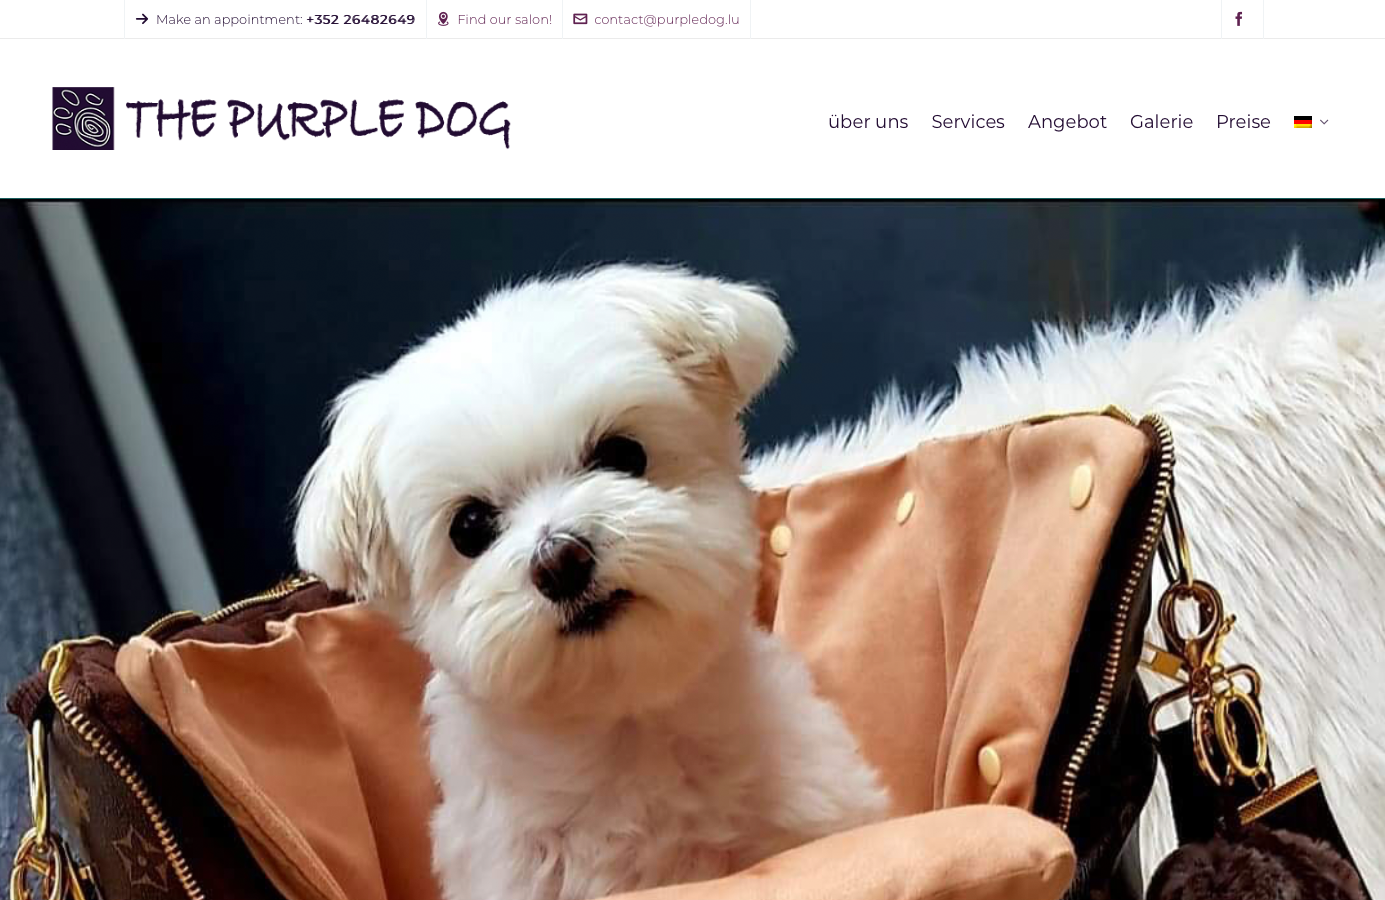 The Purple Dog Homepage